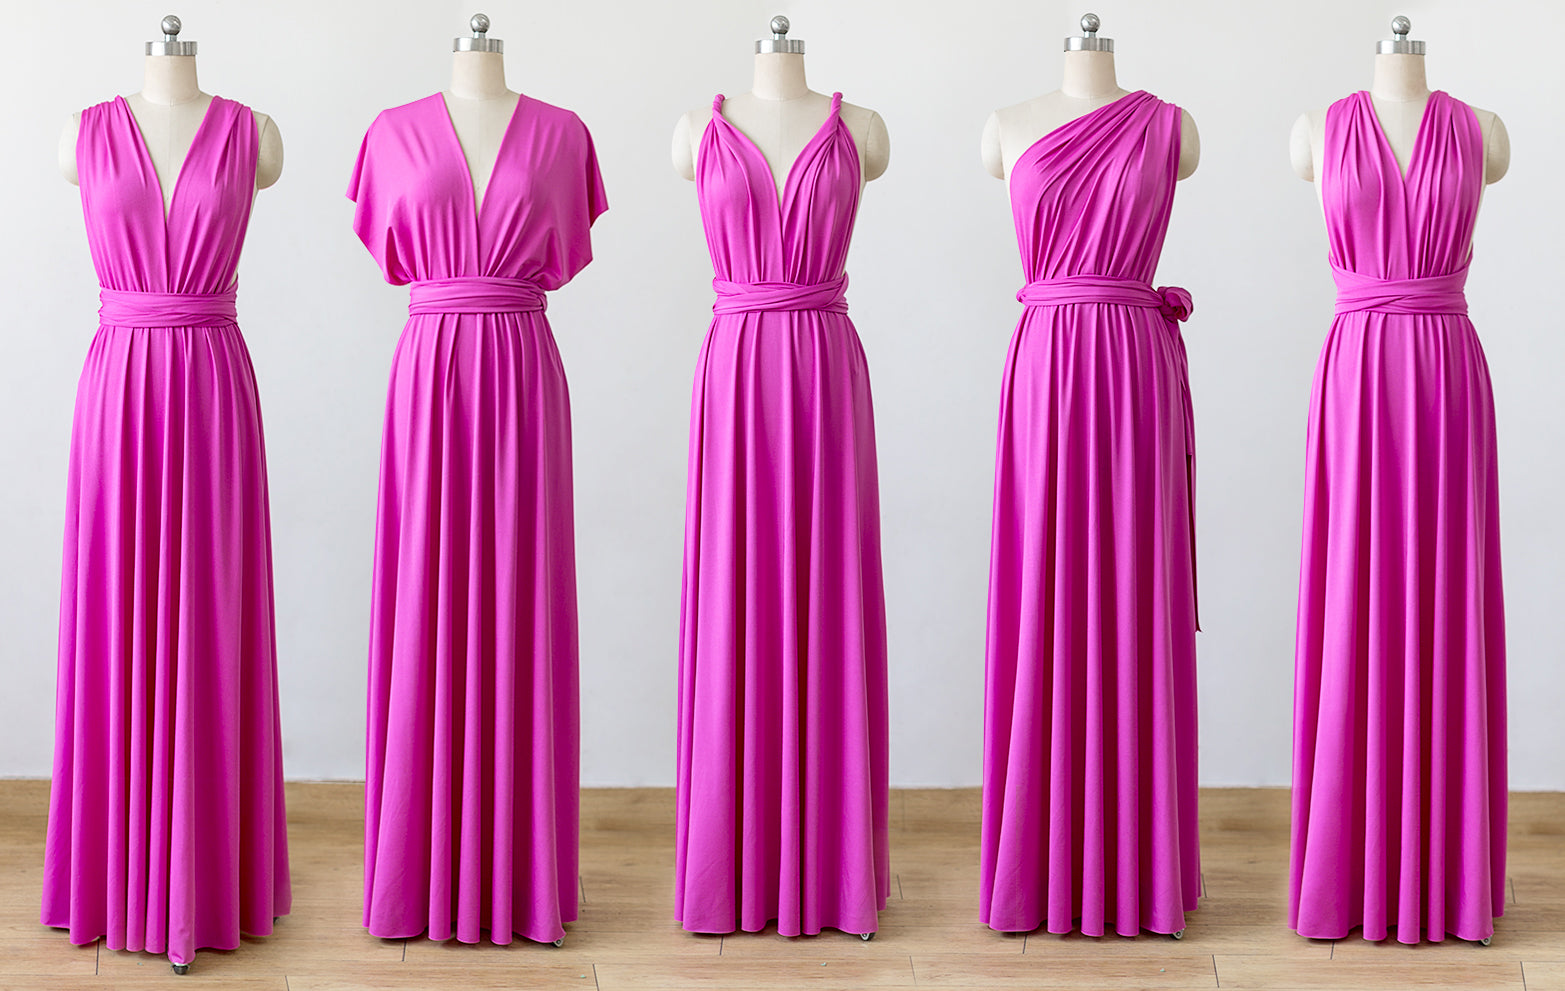 Hot Pink Convertible Bridesmaid Dresses Infinity Dresses Multiway Dr Niceoo